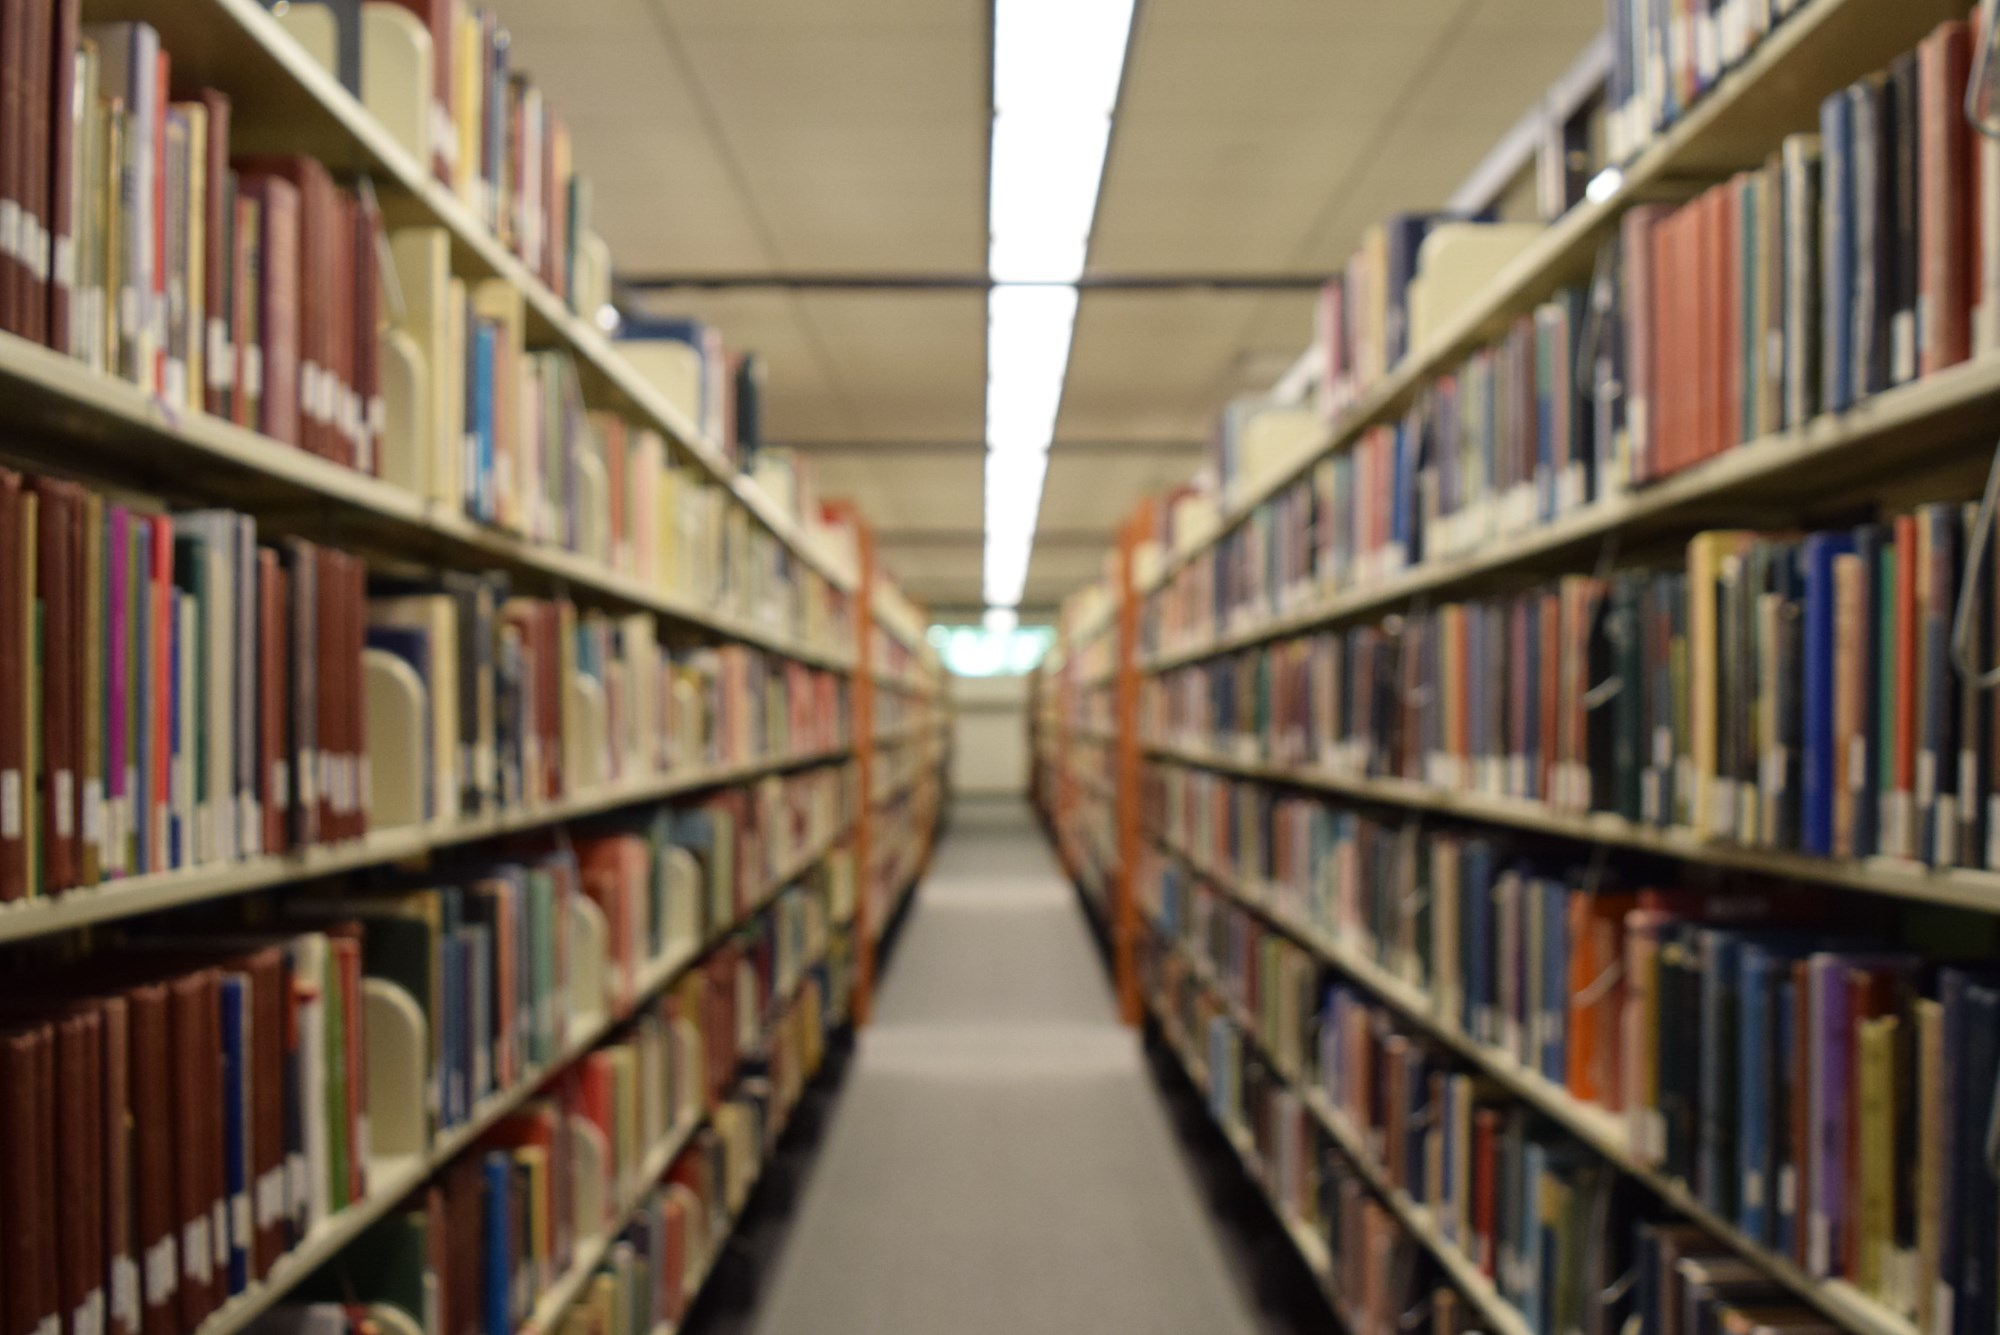 A <i>Forbes</i> contributor has suggested replacing libraries with Amazon bookstores